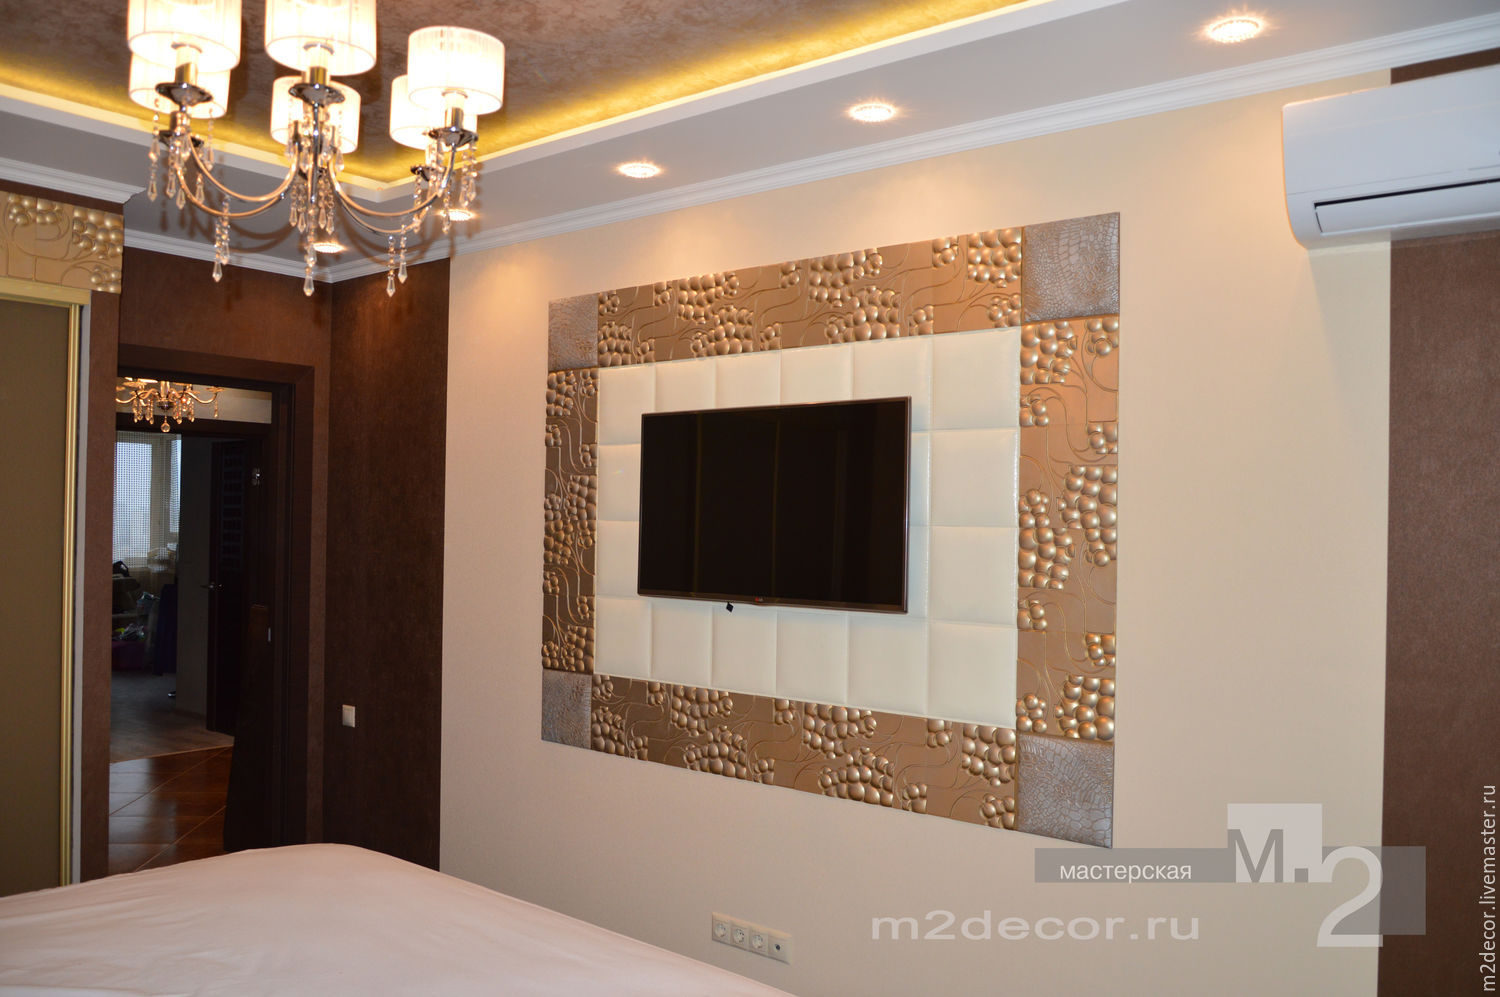 Decorative Interior Plastering : Bedroom decor decorative plaster panels shop online on